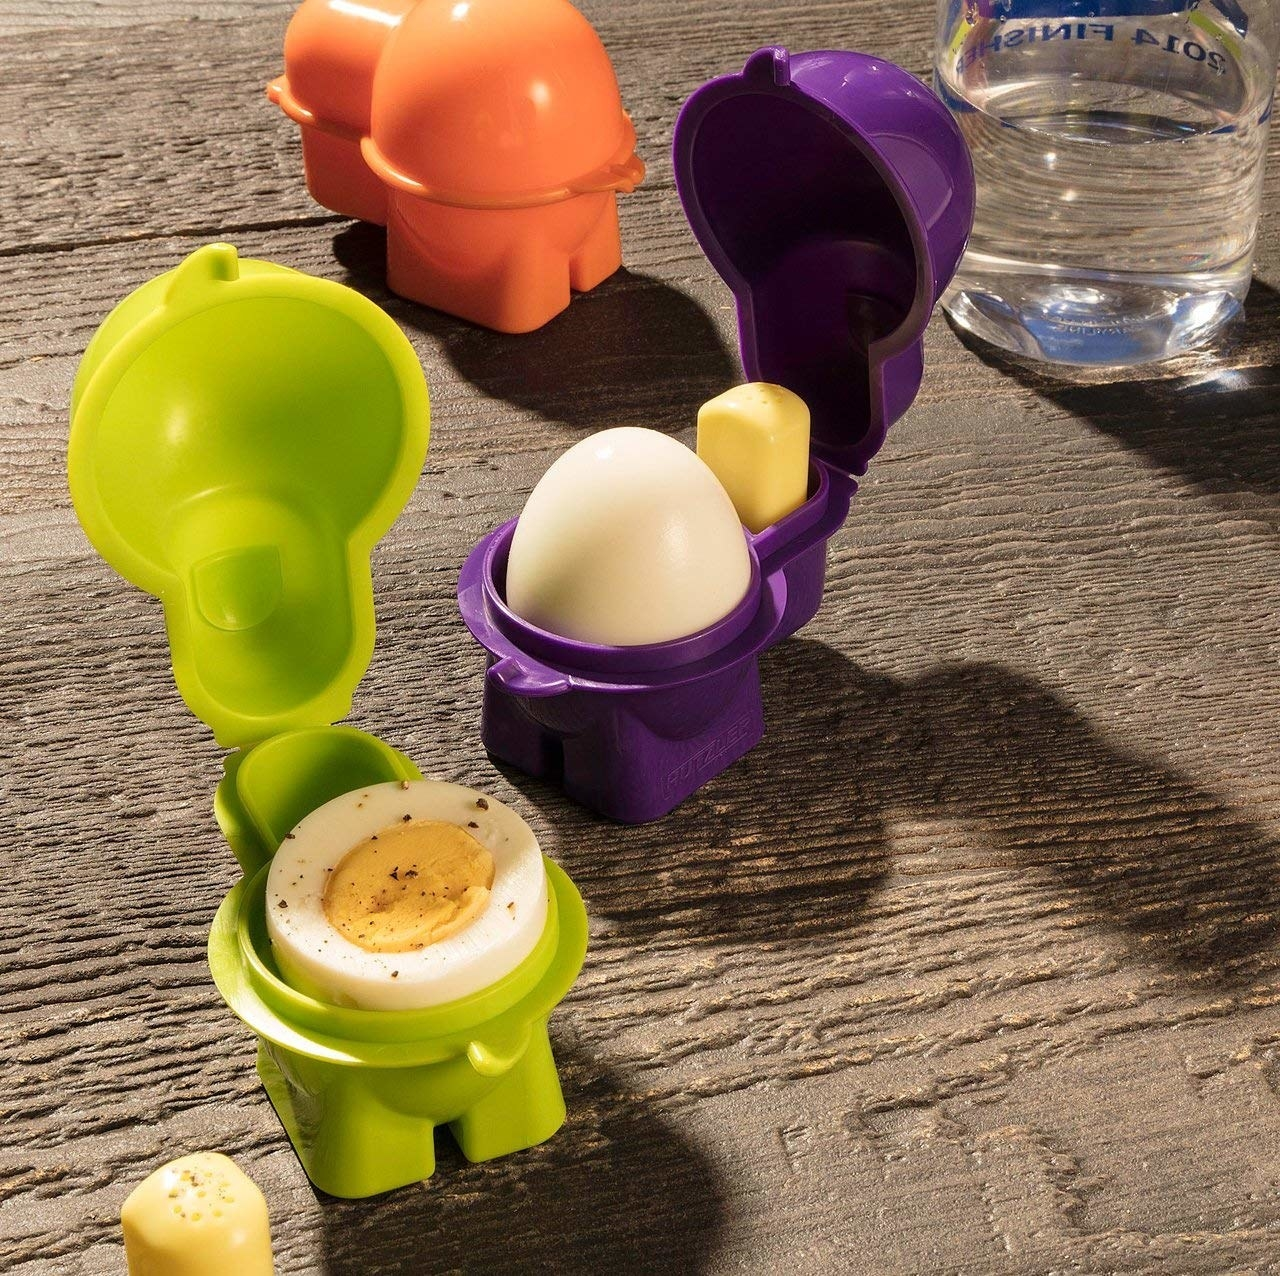 Three egg containers with eggs in them